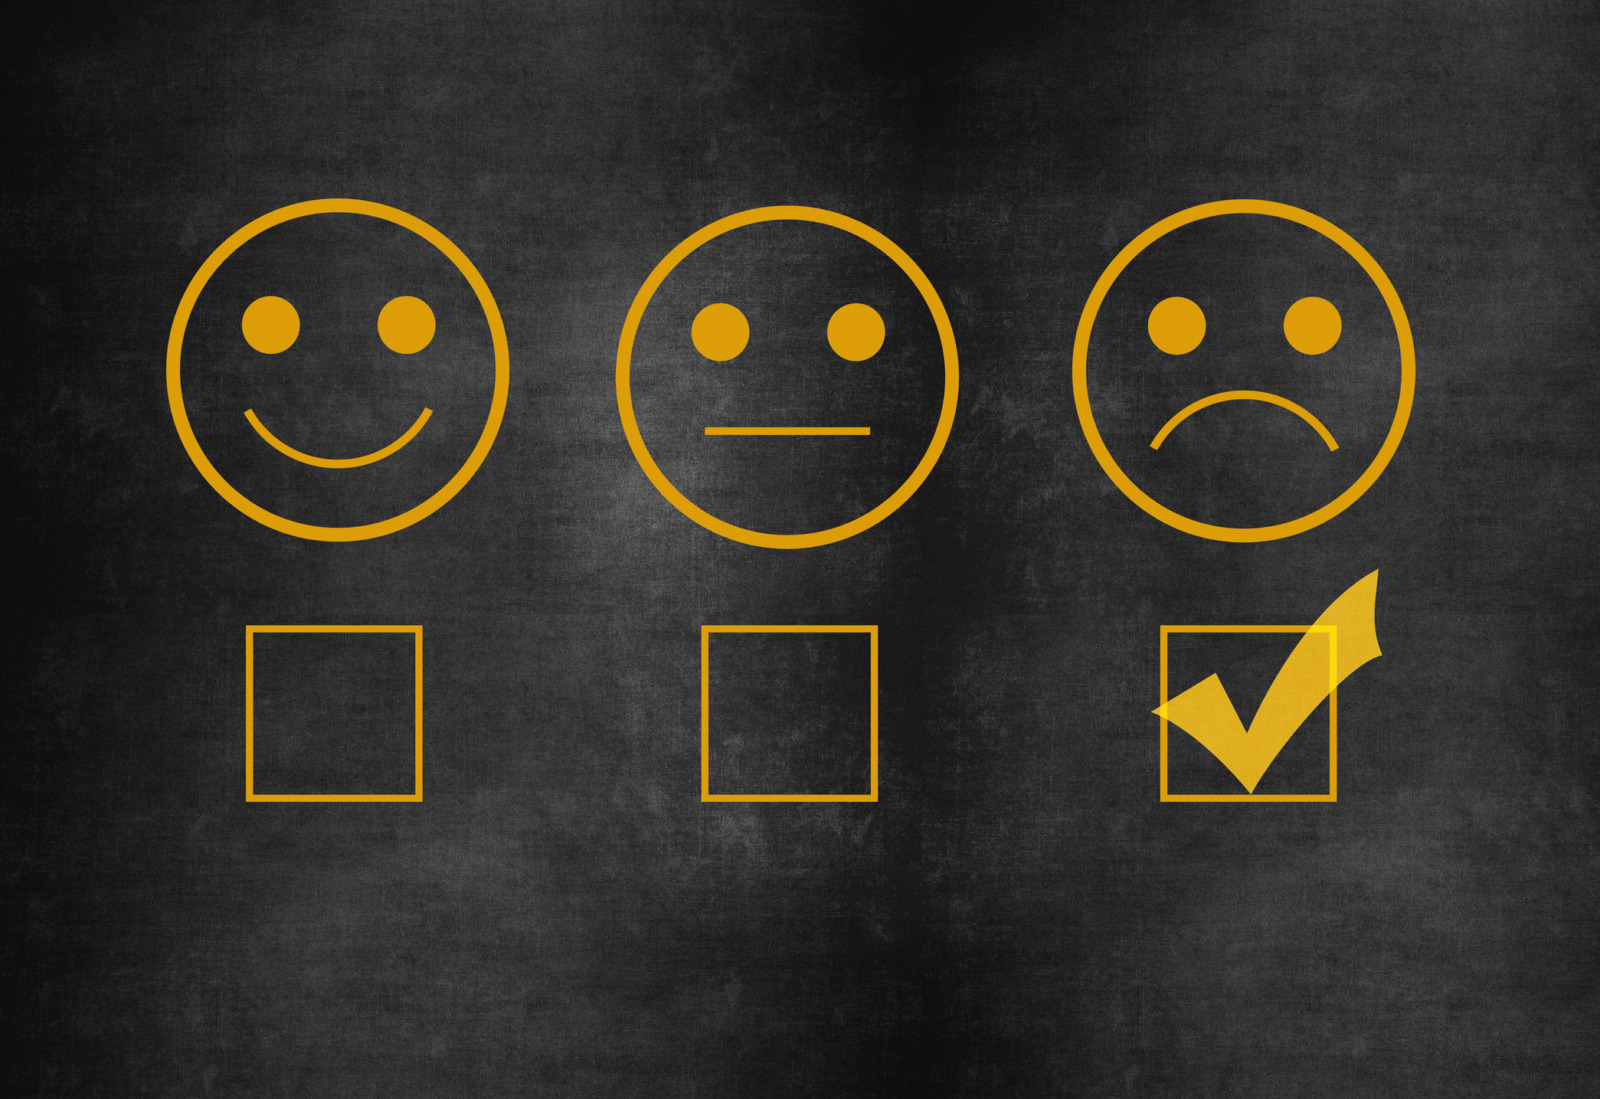 5 Soft Costs of a Poor Candidate Experience